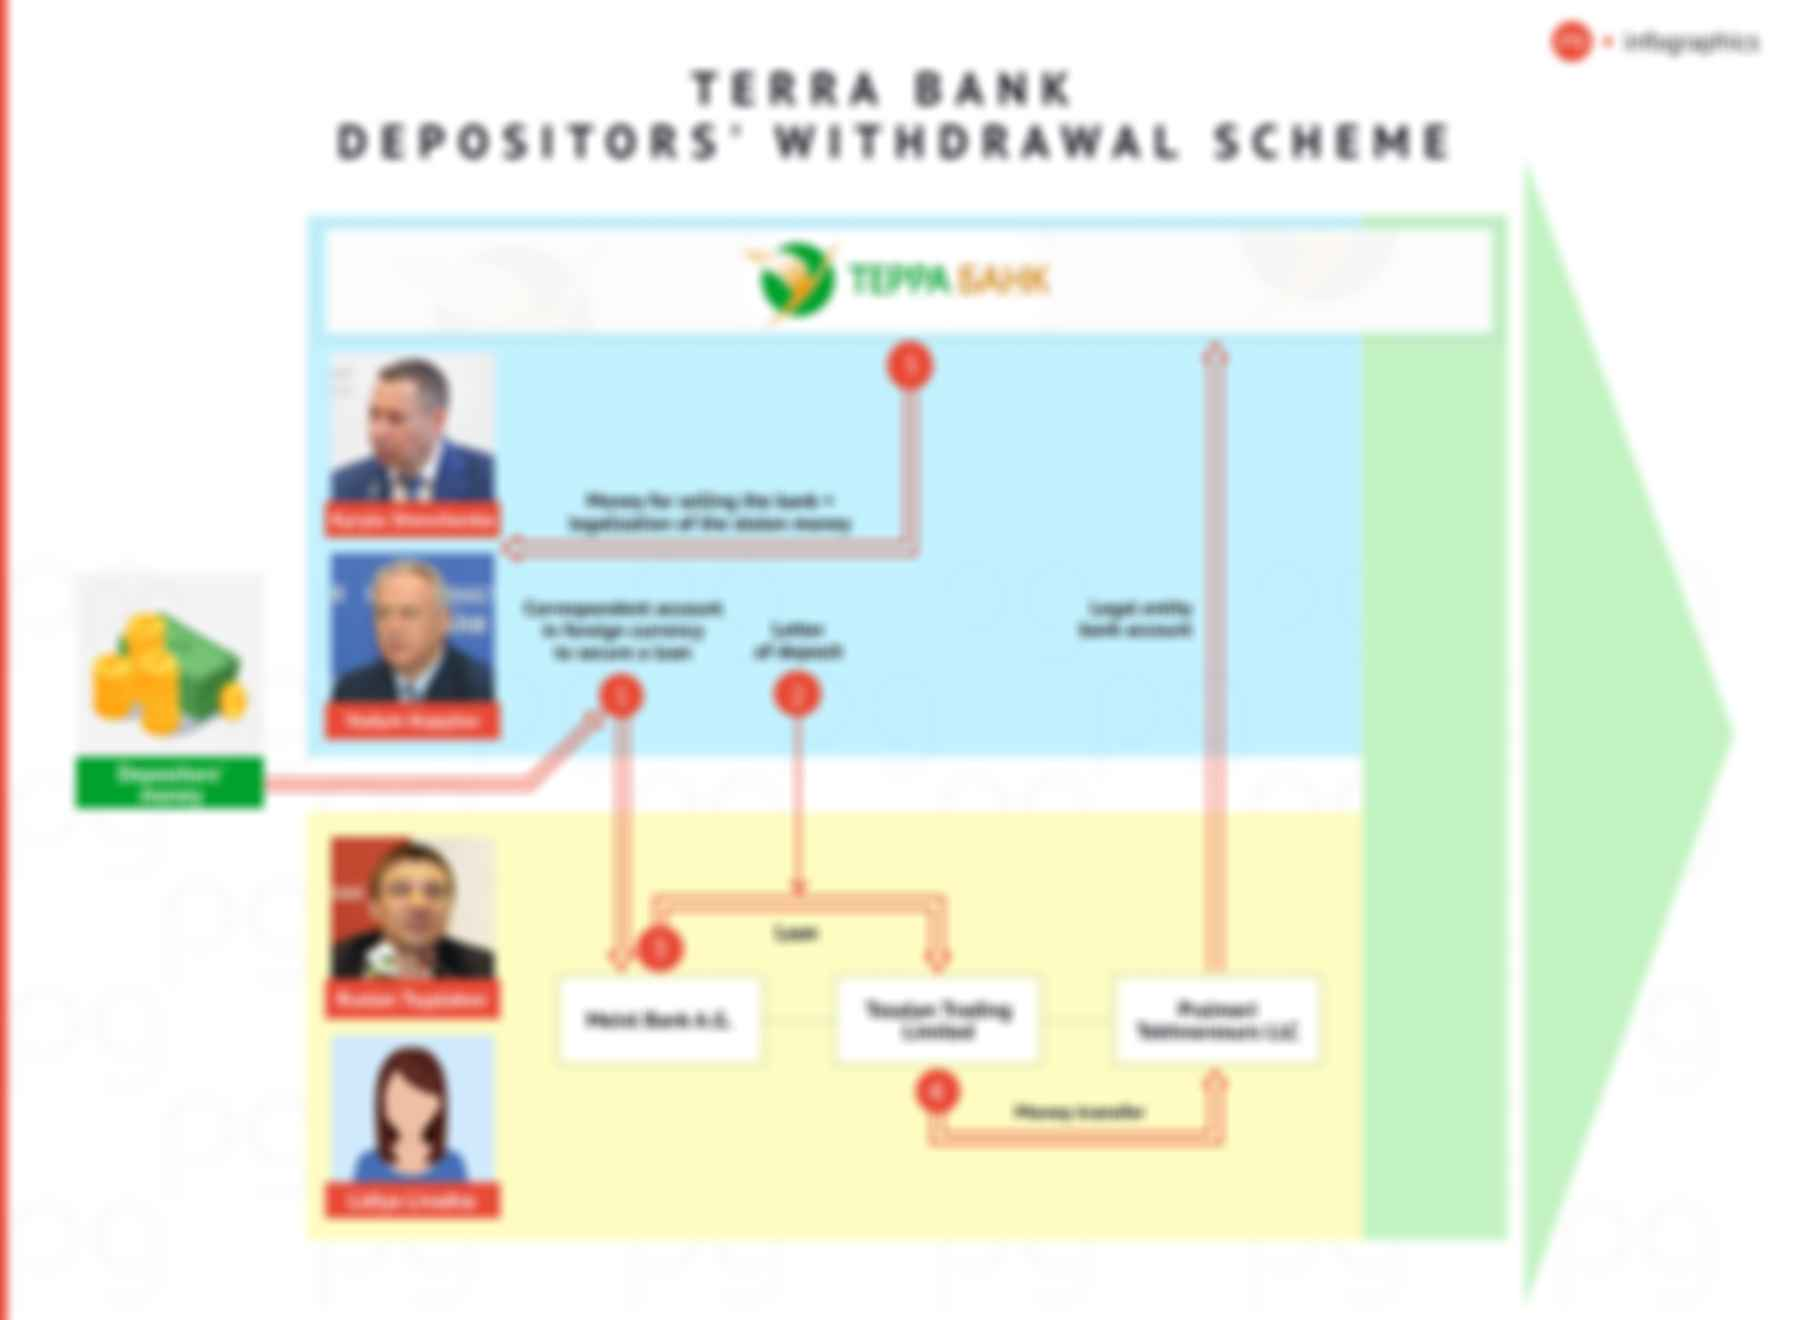 Terra Bank depositors' withdrawal scheme. Infographics: The Page